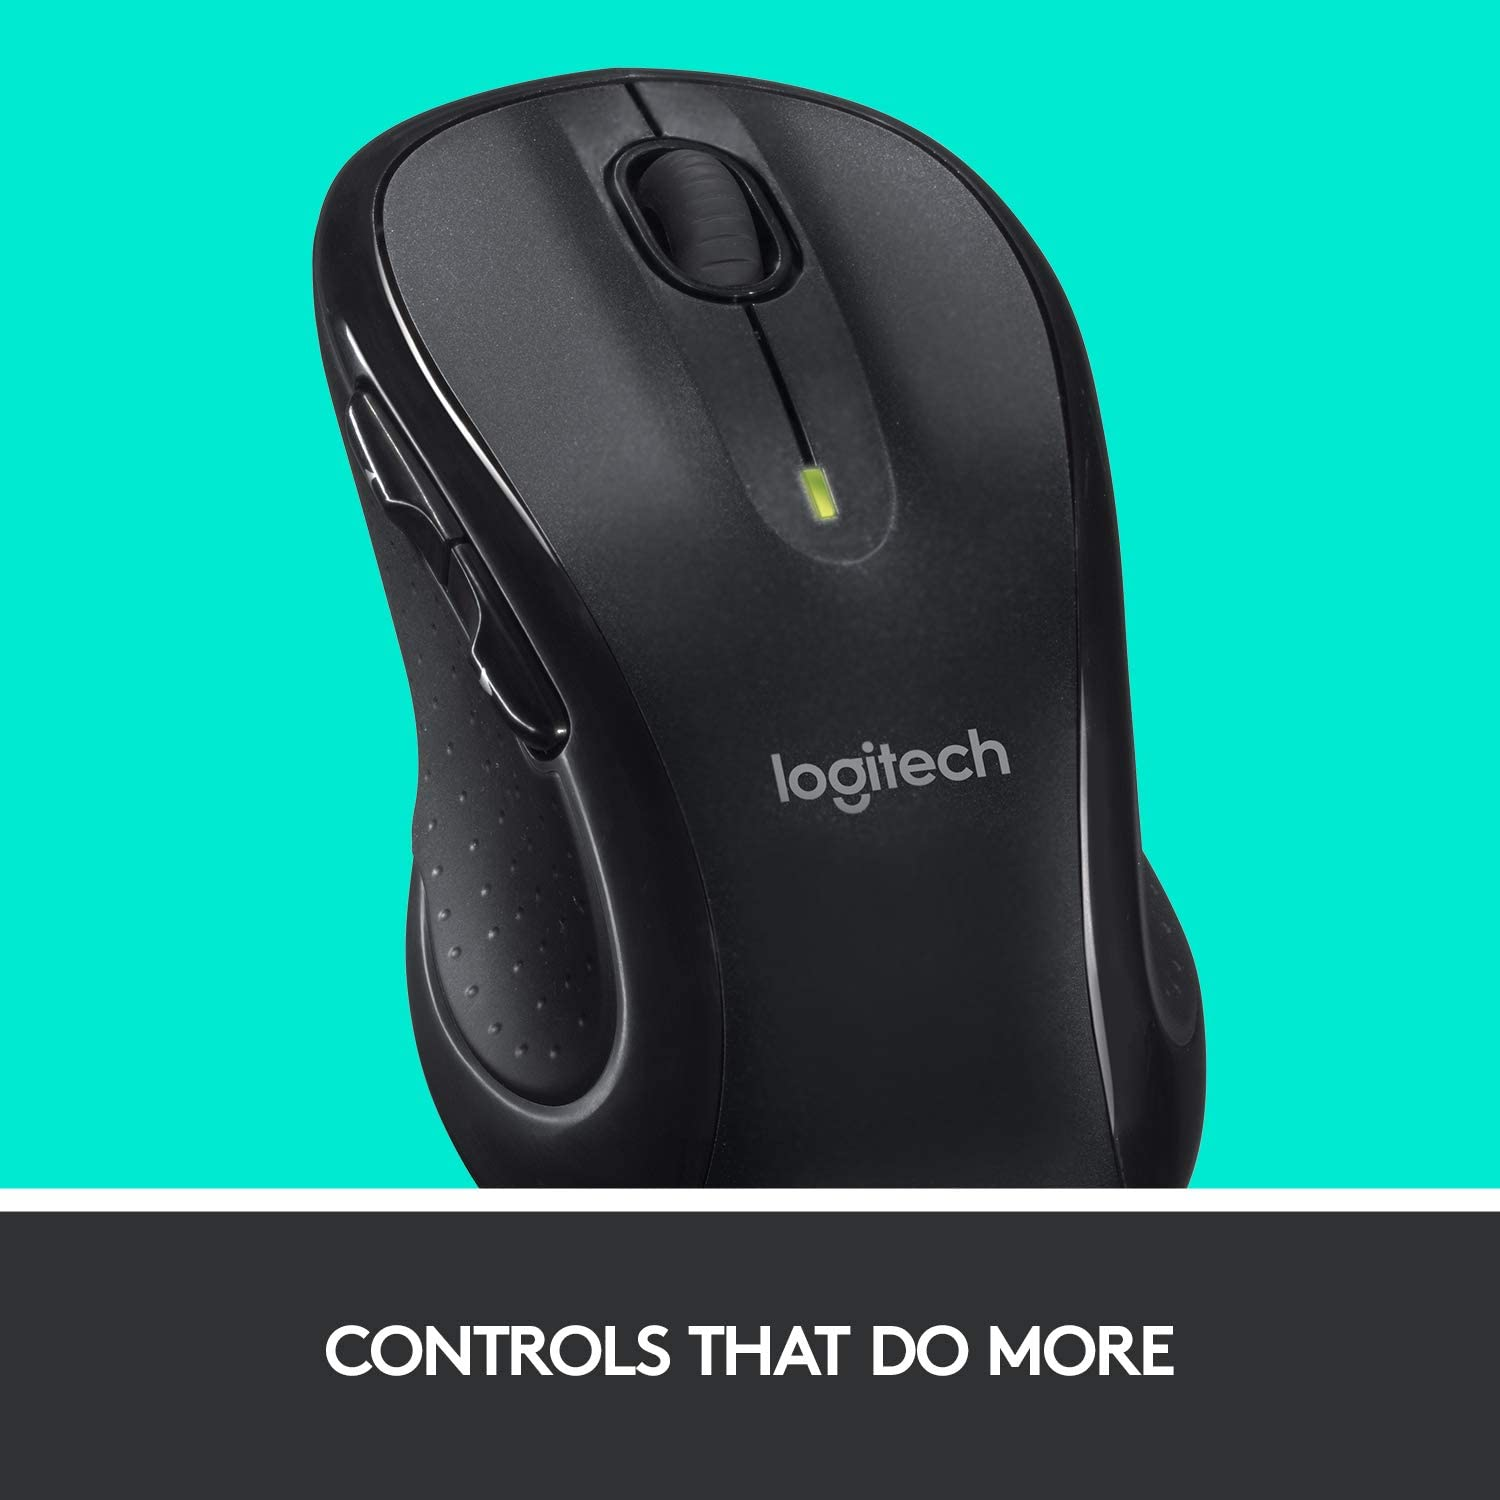 Logitech M510 Wireless Computer Mouse for PC with USB Unifying Receiver Graphite